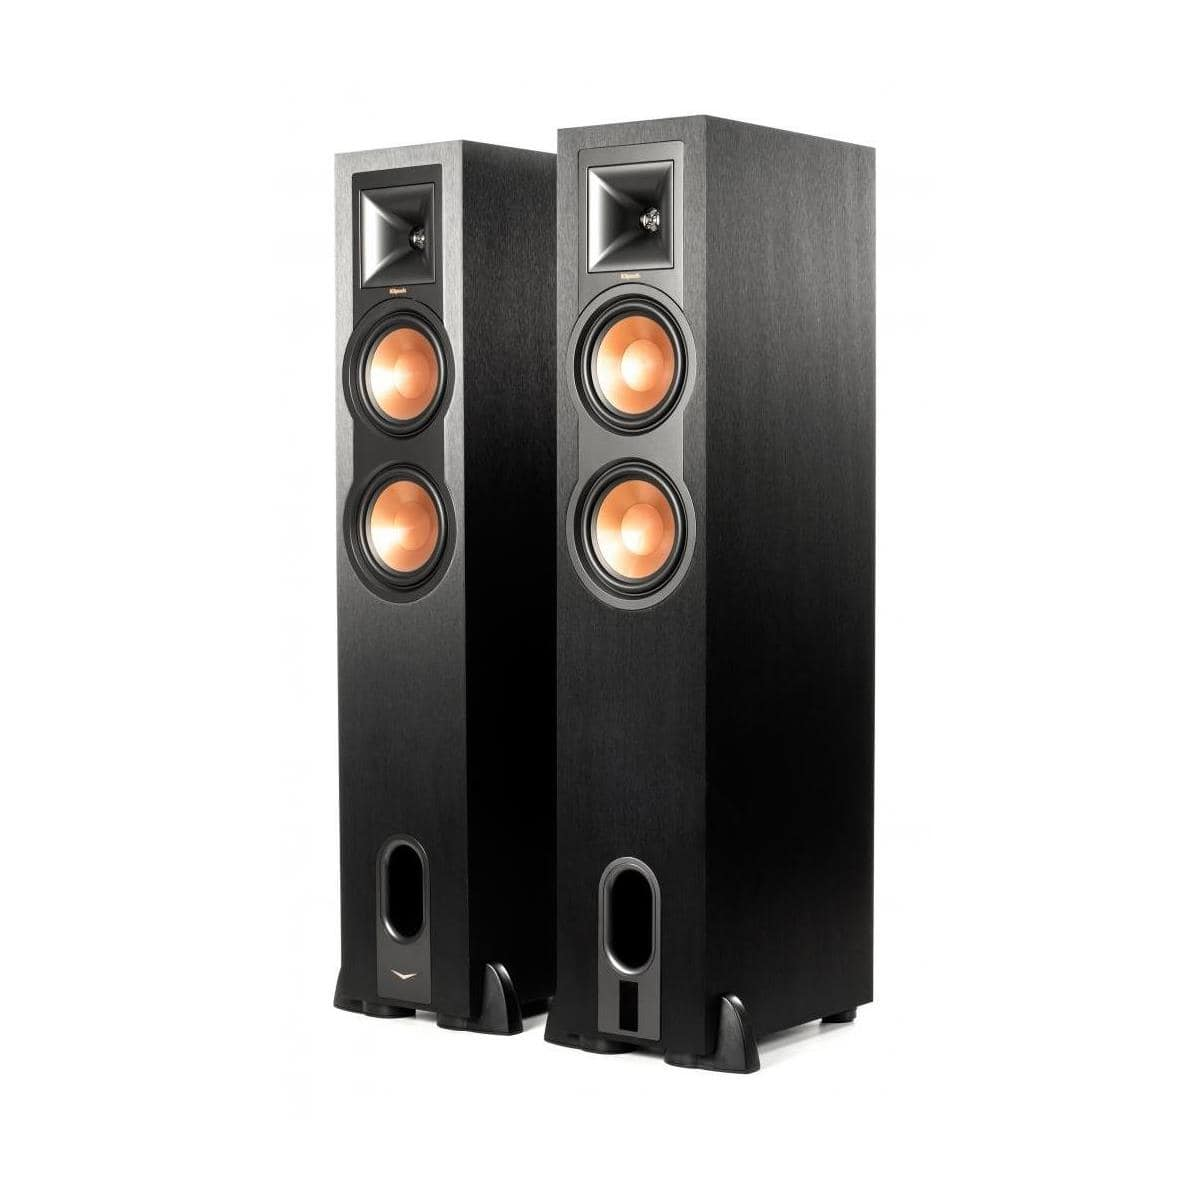 floor the best dolby audio in atmos klipsch speakers buy blog top floors r of built genius module tv speaker home is theatre review